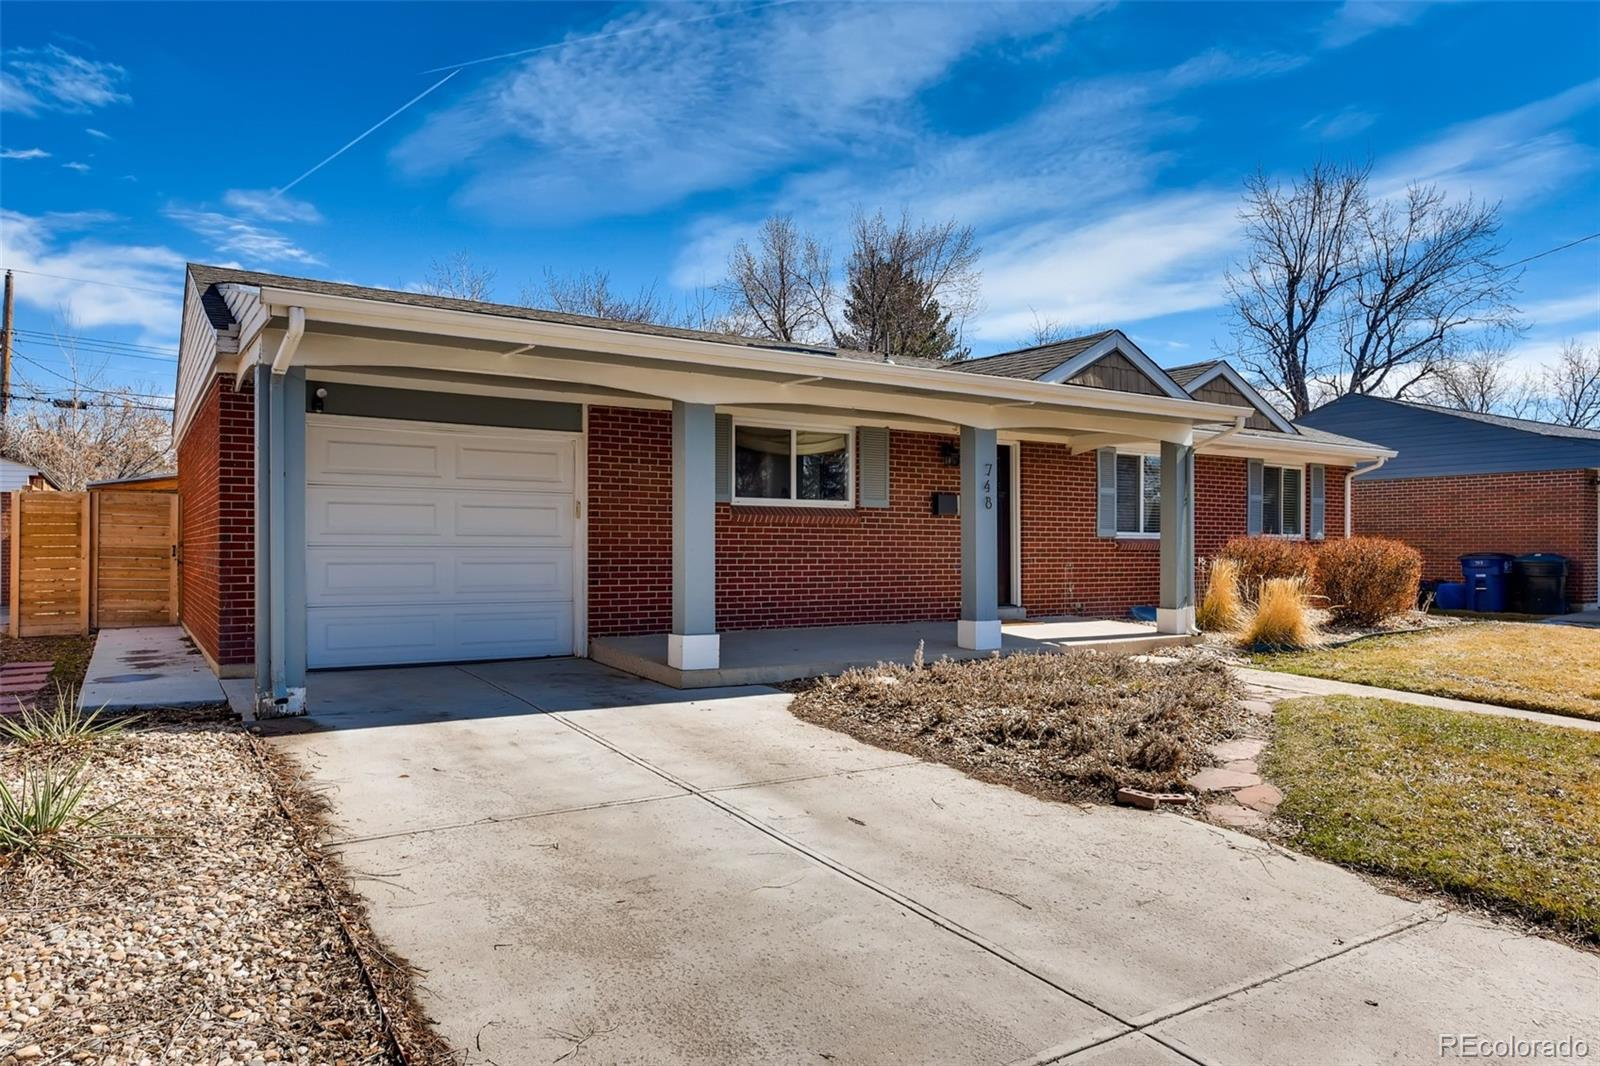 748 S Grape Street, Denver, CO 80246 - #: 5906687